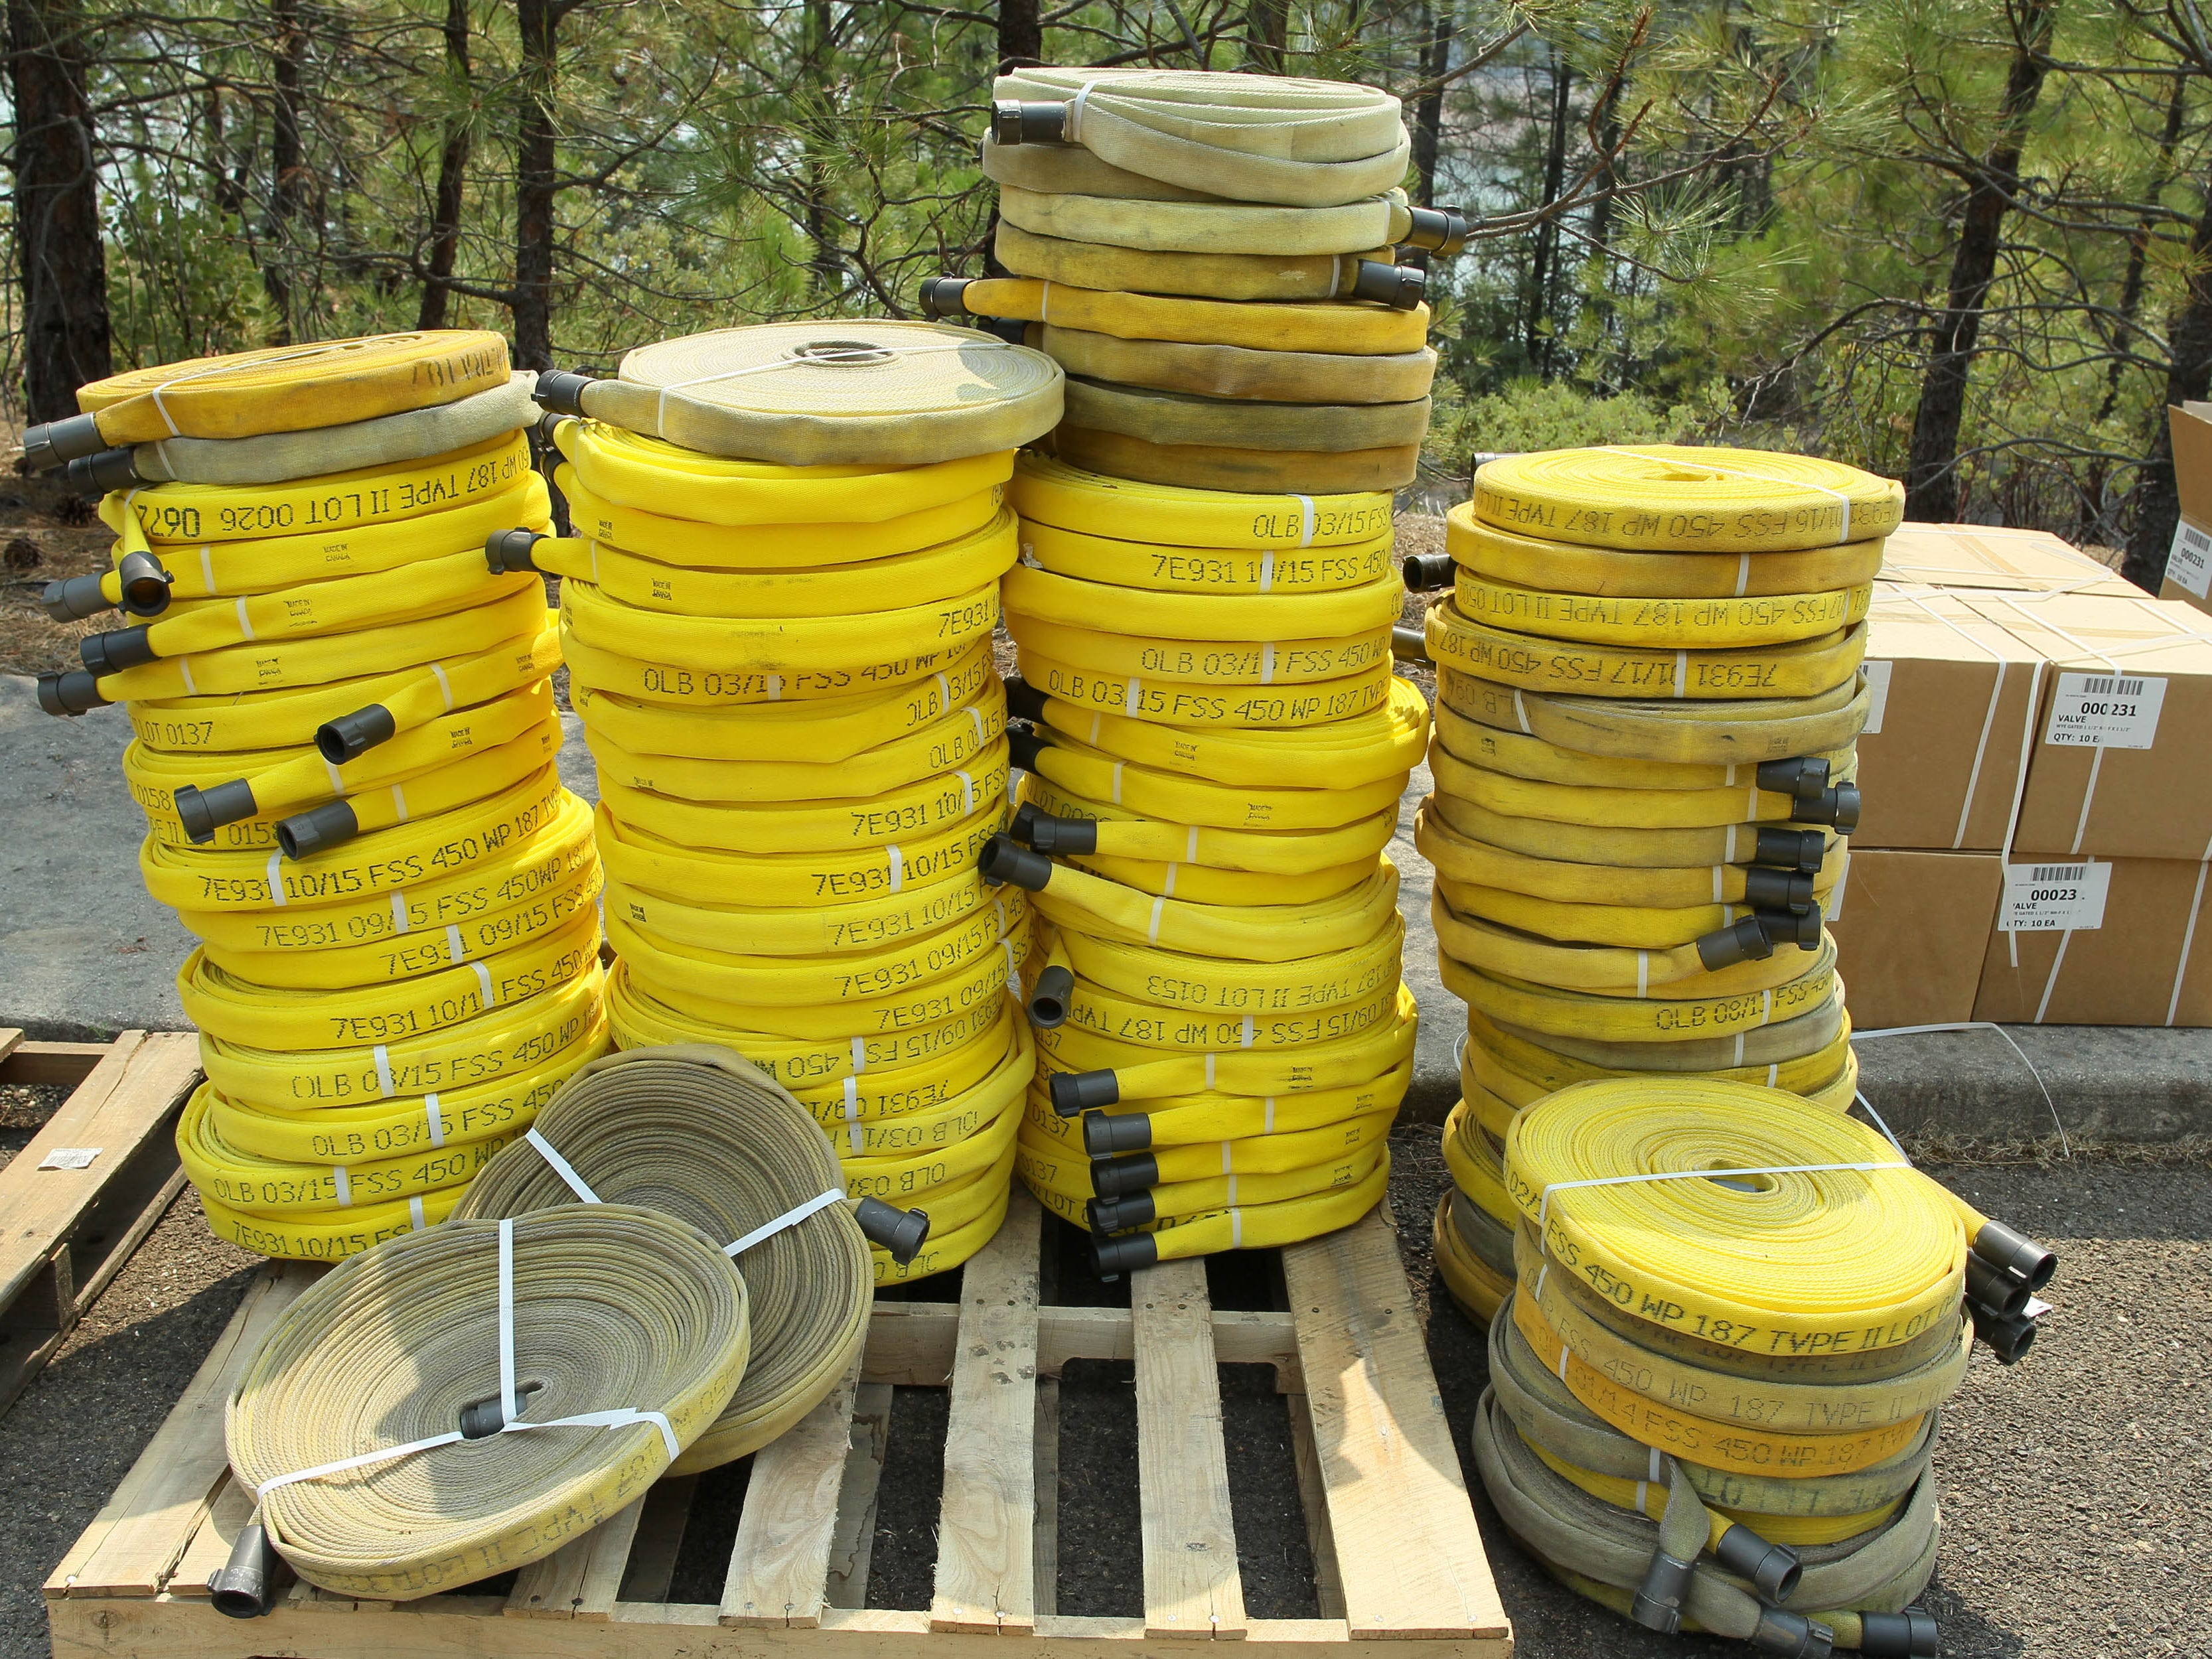 Water hoses are stacked up Saturday, Aug. 18, 2018 at Hirz Bay for the crews working the Hirz Fire. (Special to the Record Searchlight/Hung T. Vu)